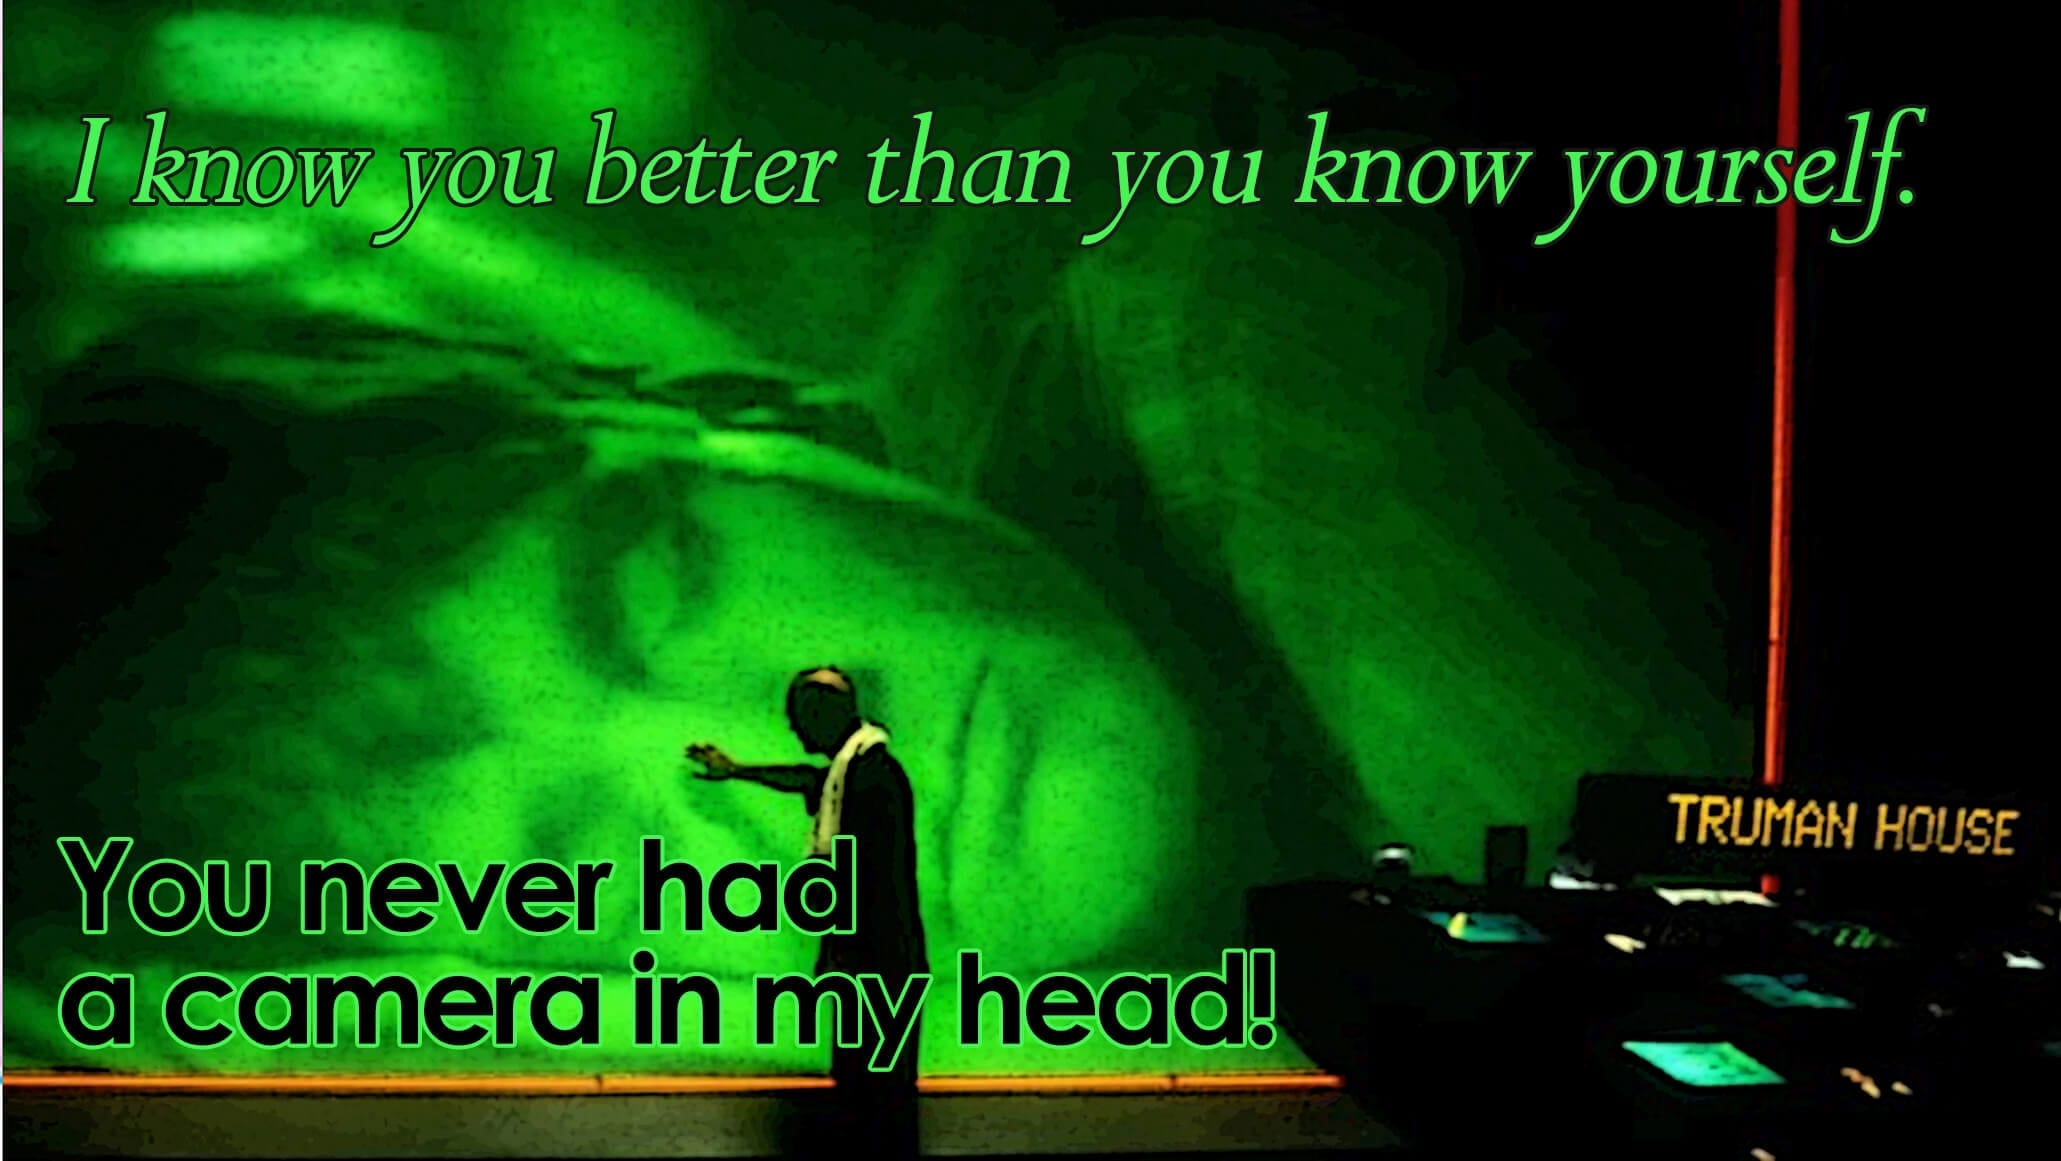 I know you better